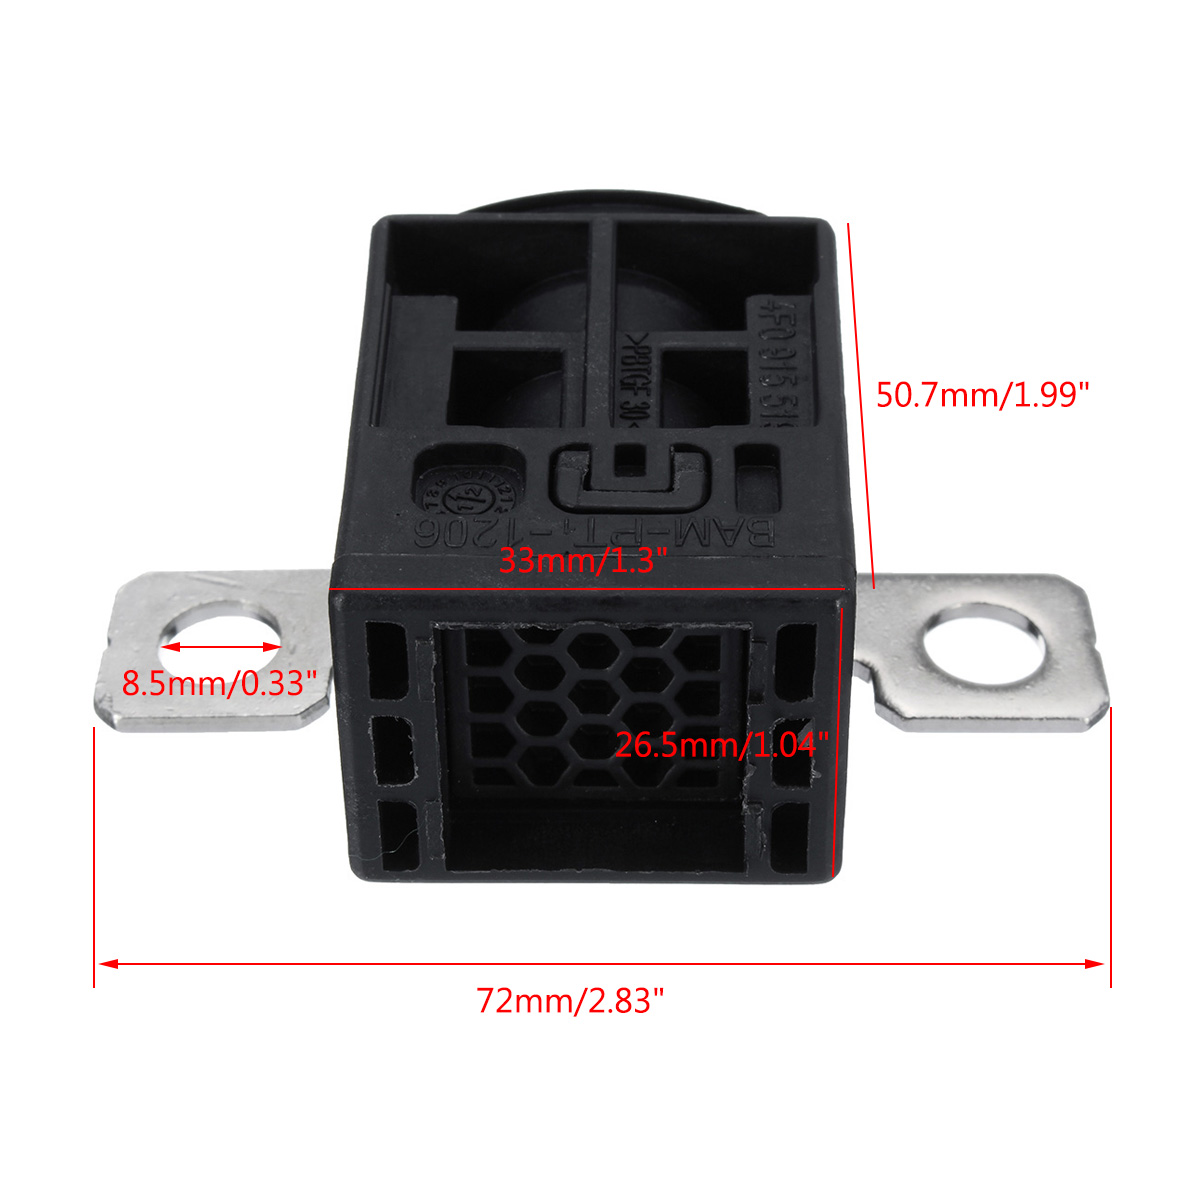 4f0915519 battery fuse box cut off overload protection trip for audi q5 a5 a7 a6  [ 1200 x 1200 Pixel ]